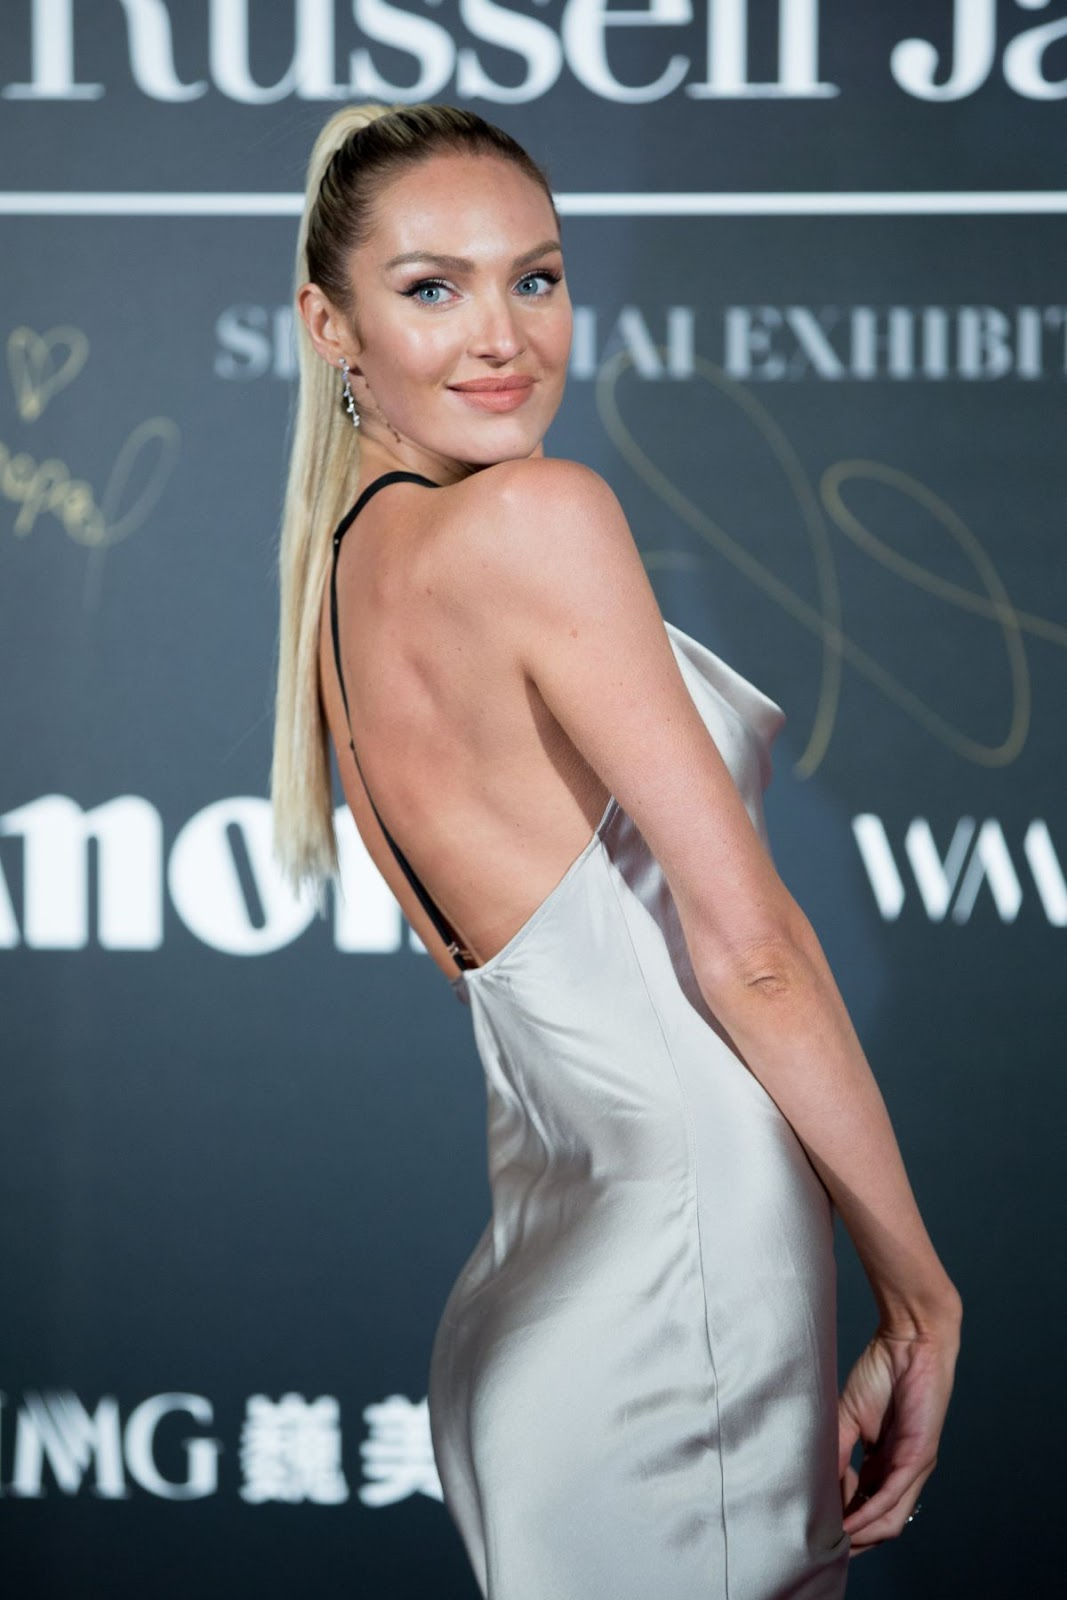 Candice Swanepoel at Mercedes-Benz Backstage Secrets by Russell James Book Launch and Shanghai Exhibition Opening Party